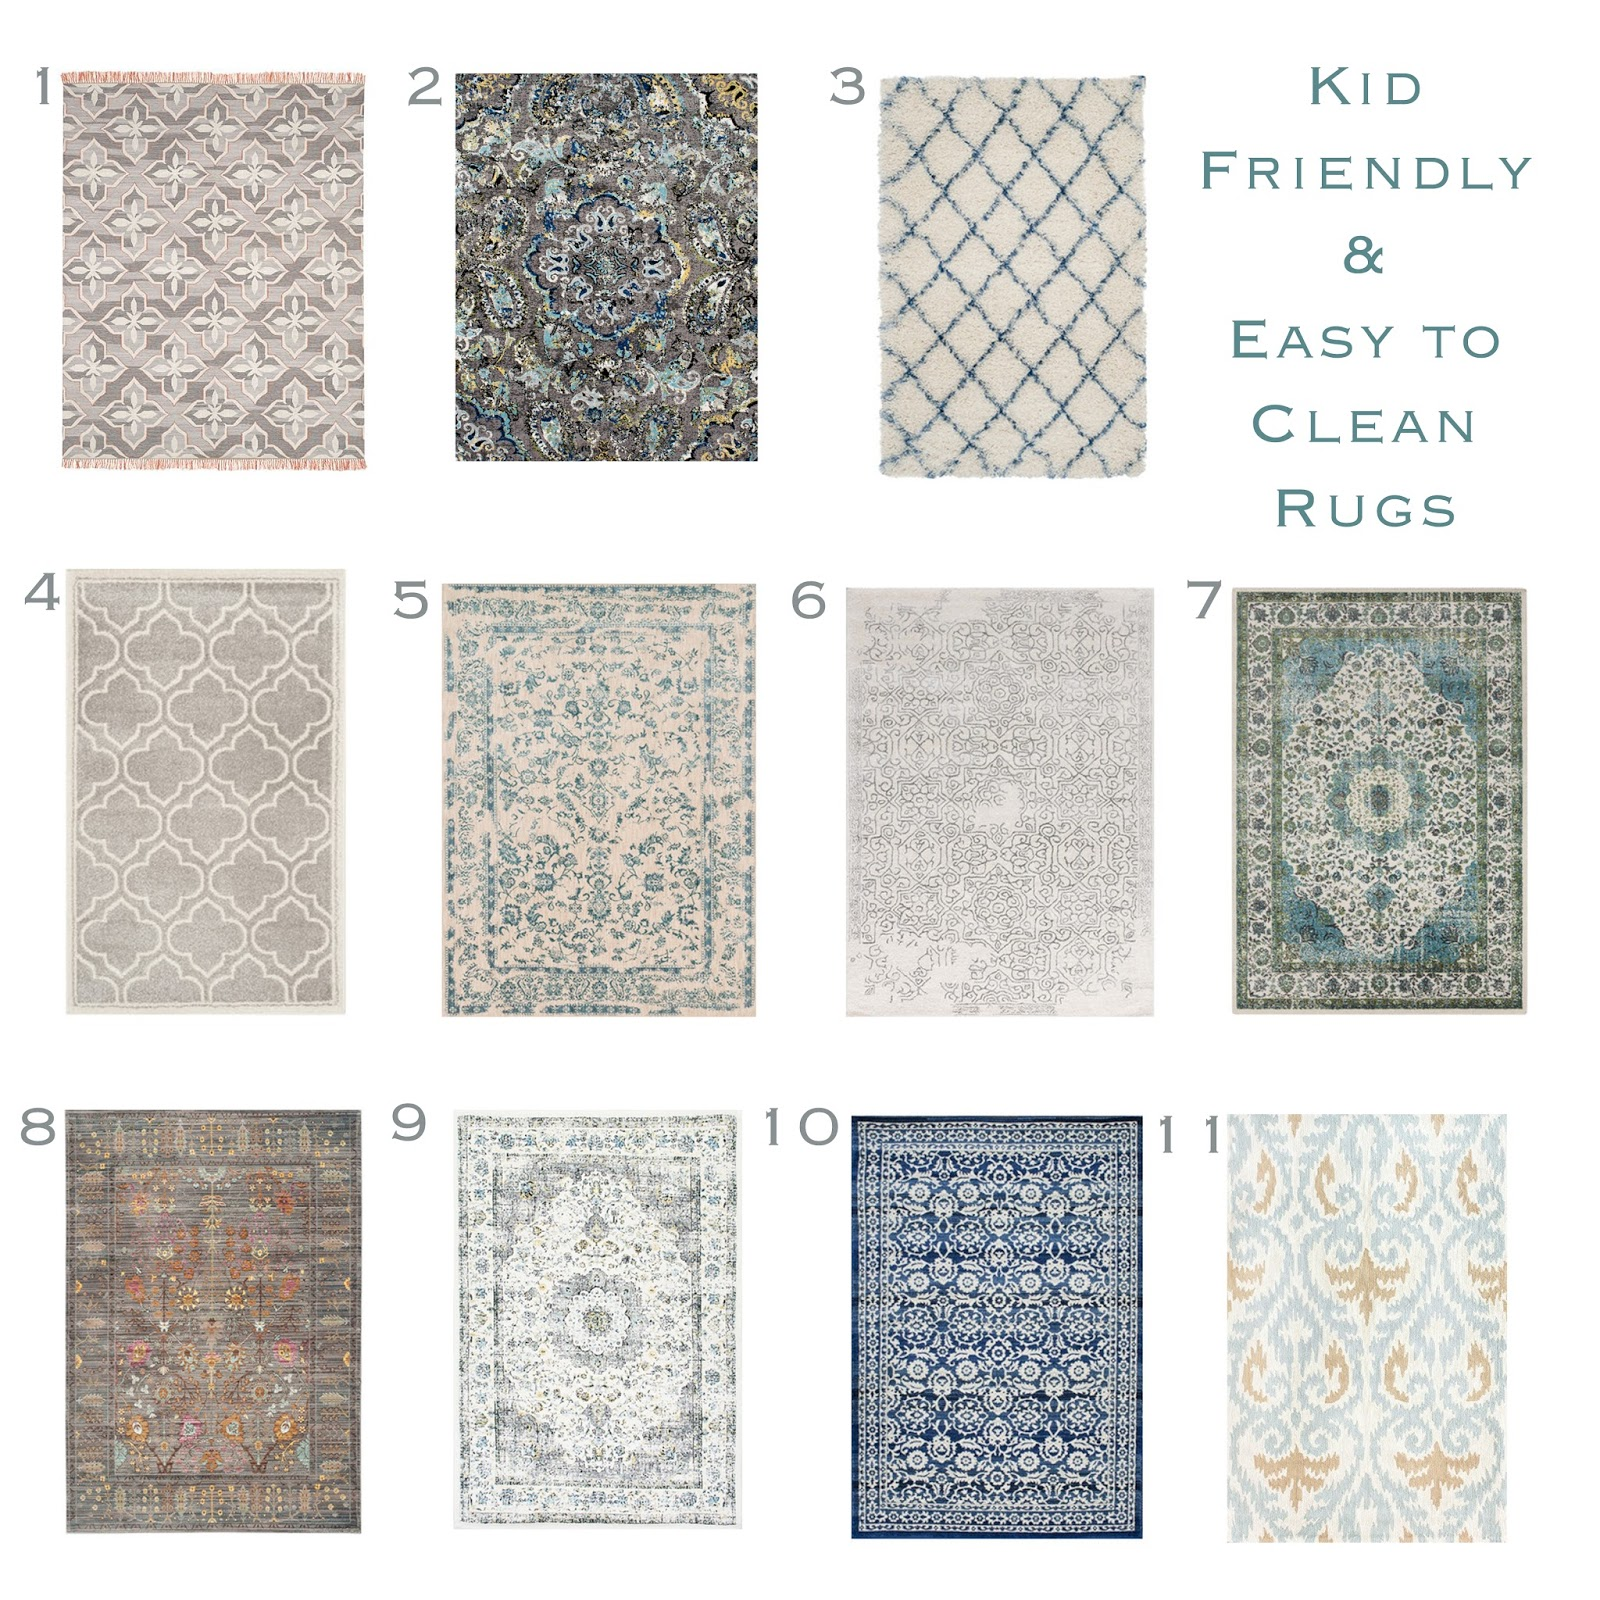 Kid Friendly Rug Round Up Sita Montgomery Interiors